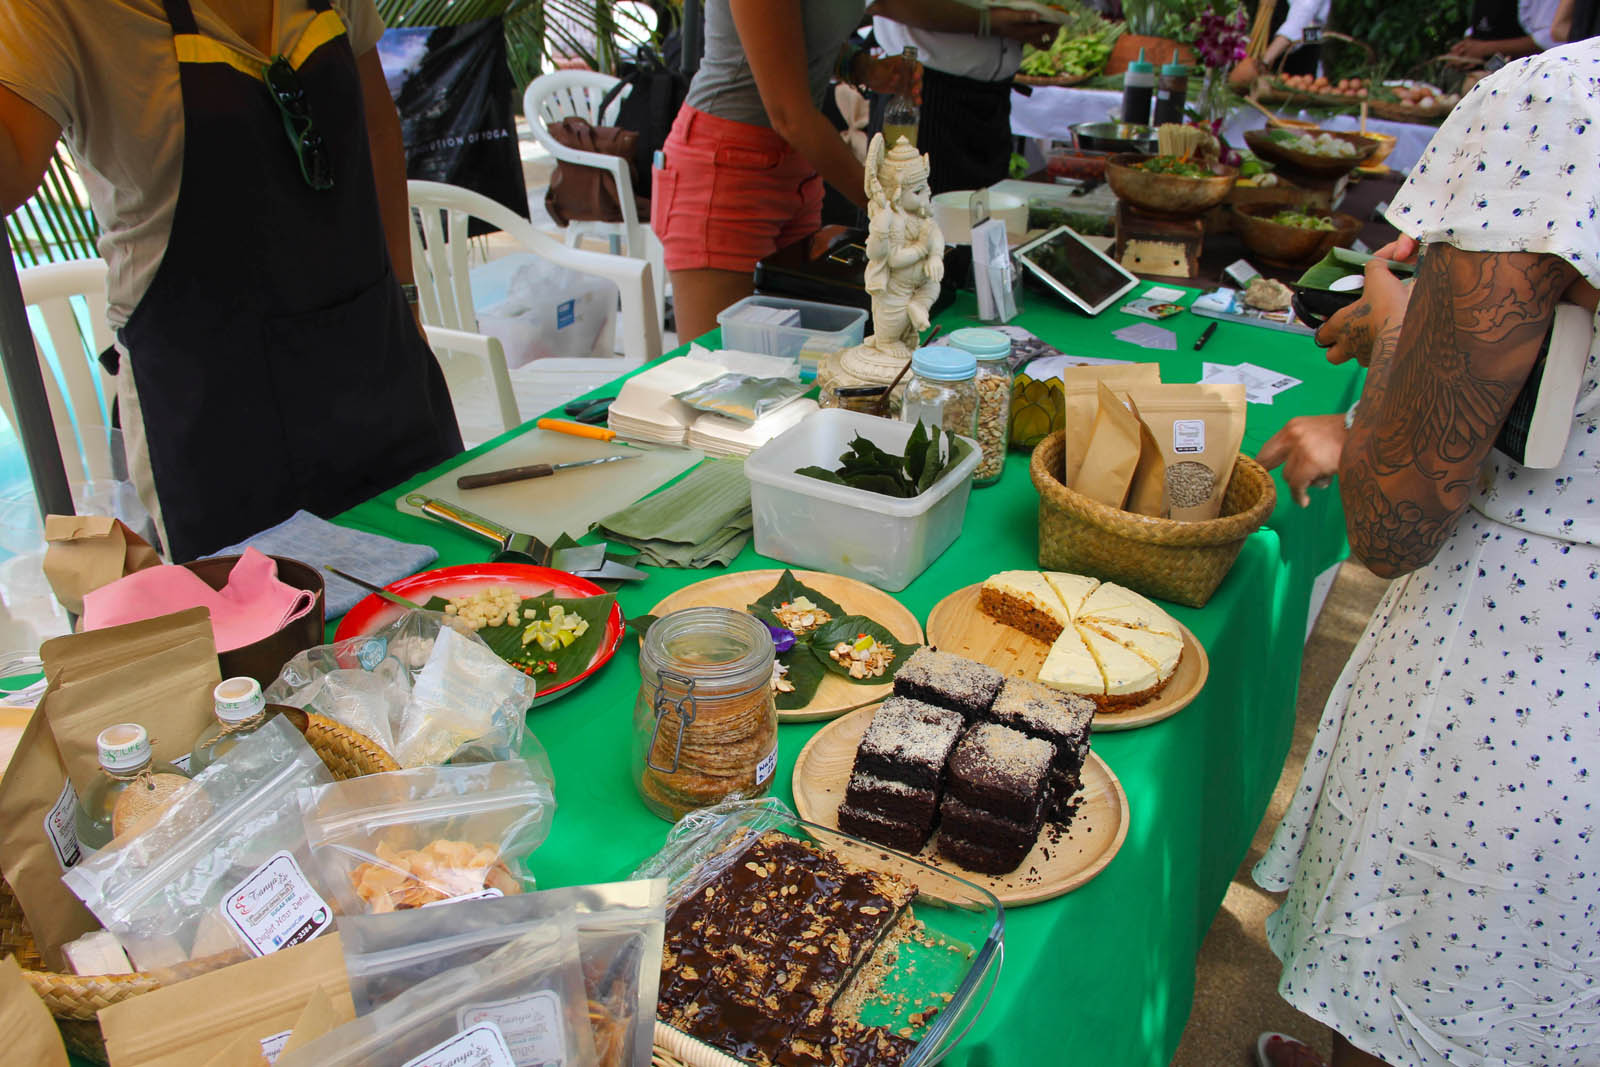 The Green Market - Elysia Samui